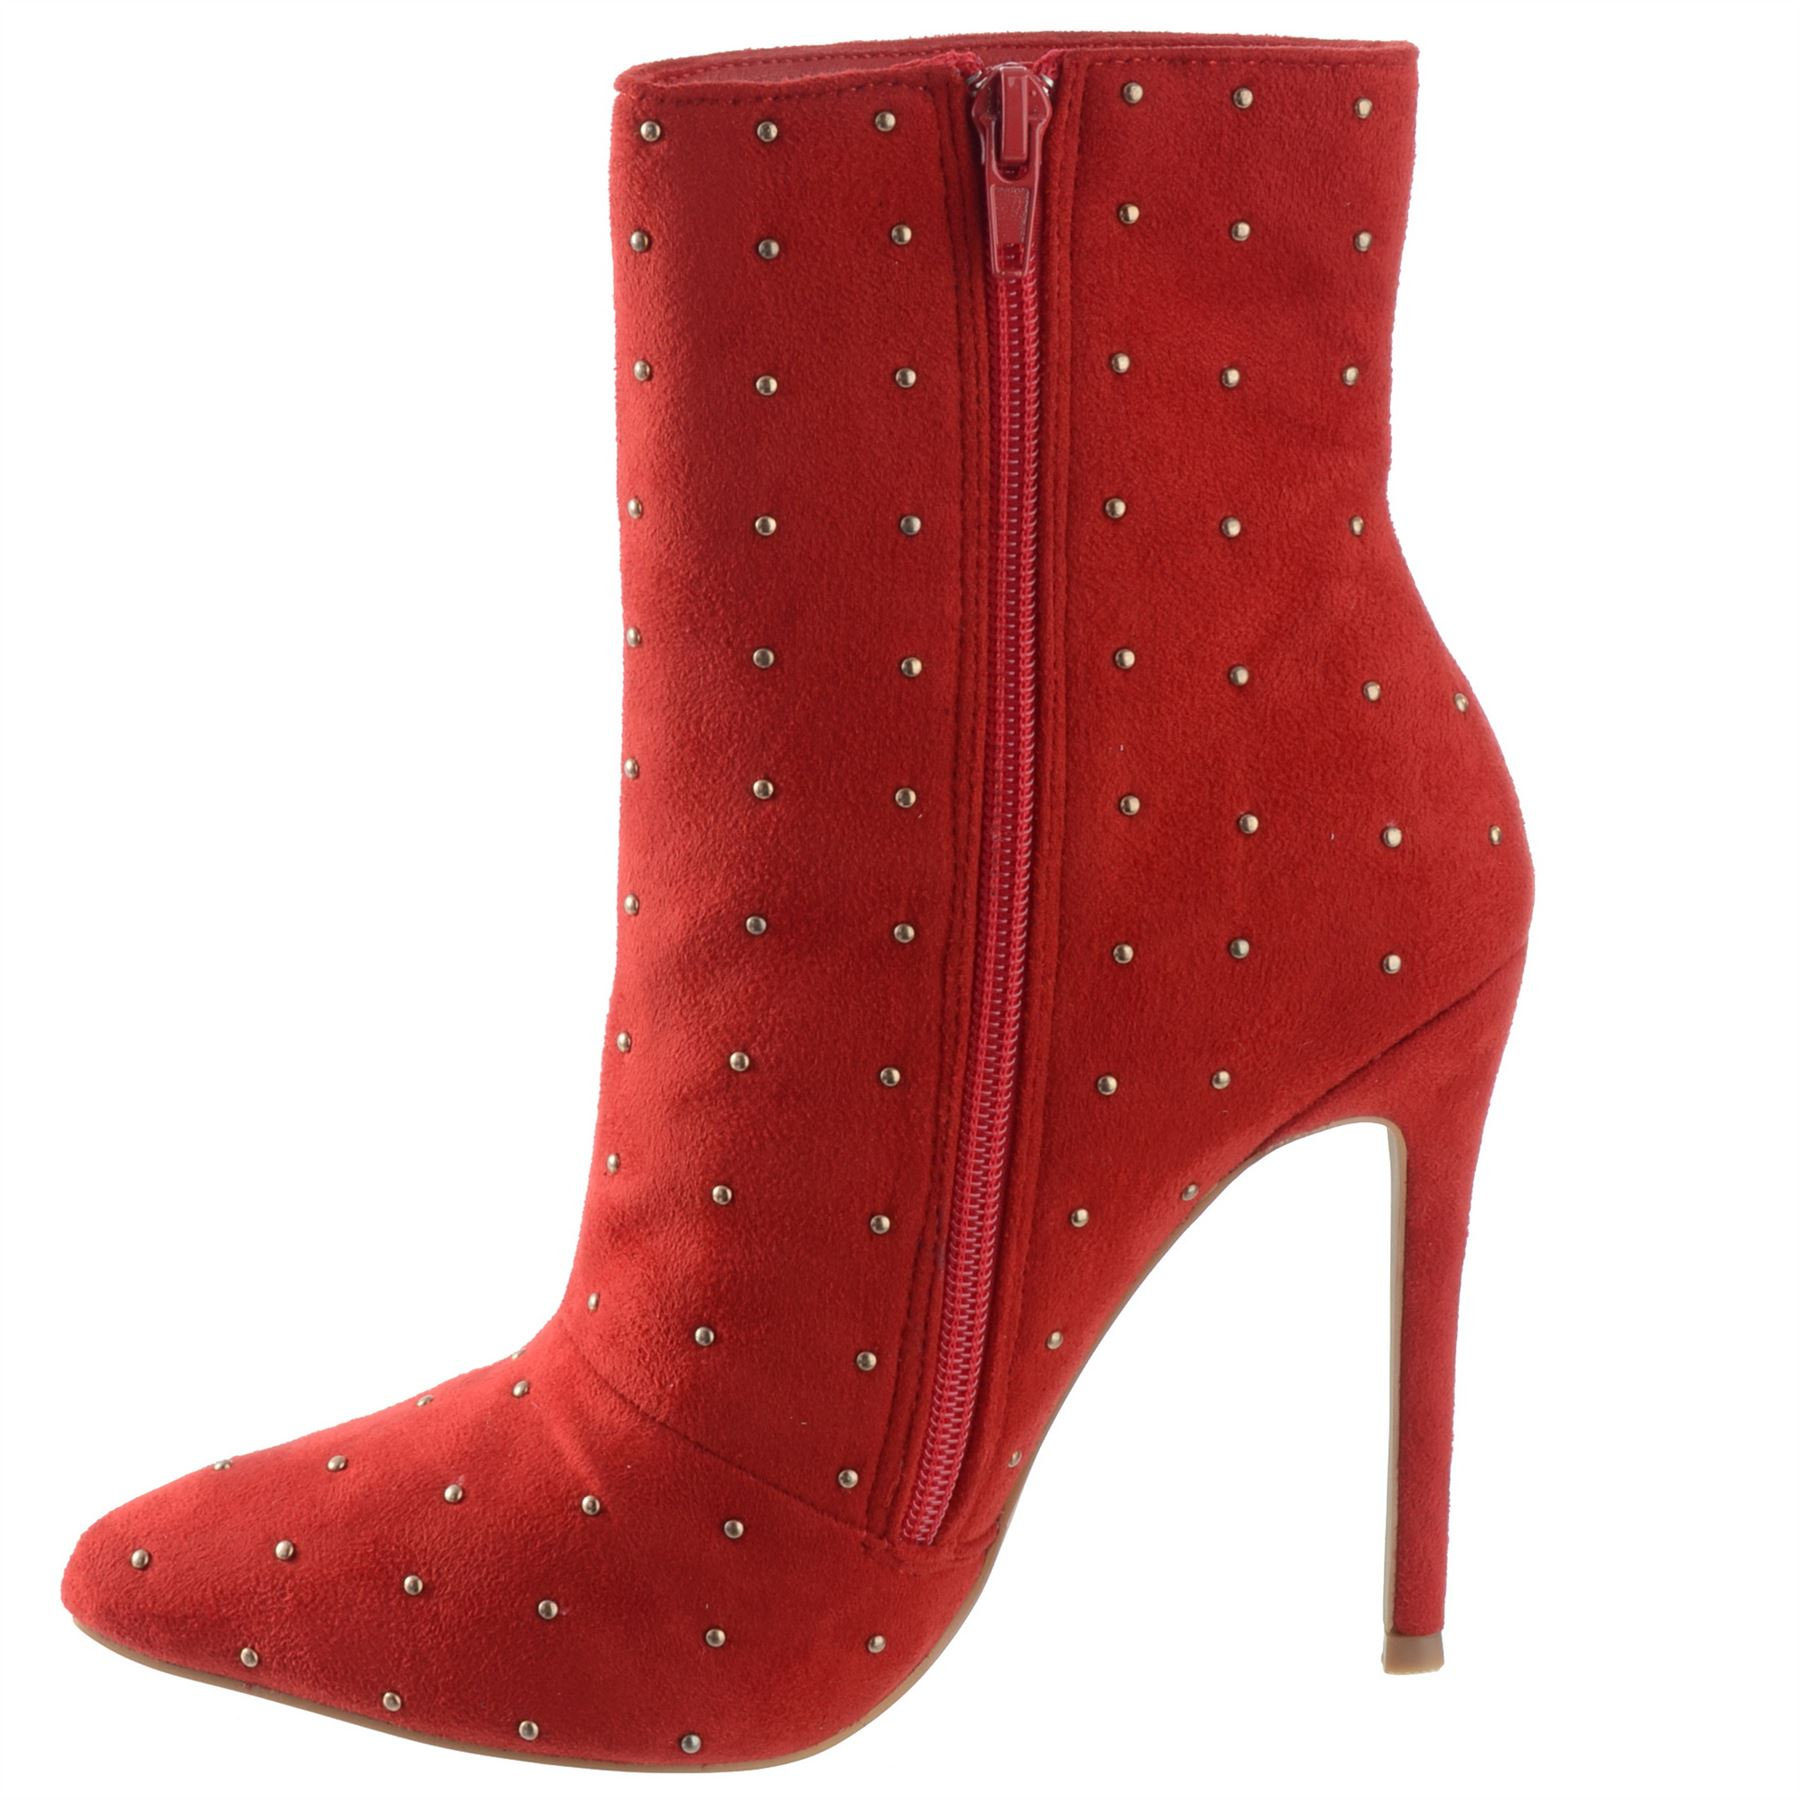 Ladies-Womens-High-Stiletto-Heel-Pointy-Toe-Zip-Up-Ankle-Boots-Shoes-Size-3-8 miniatuur 13